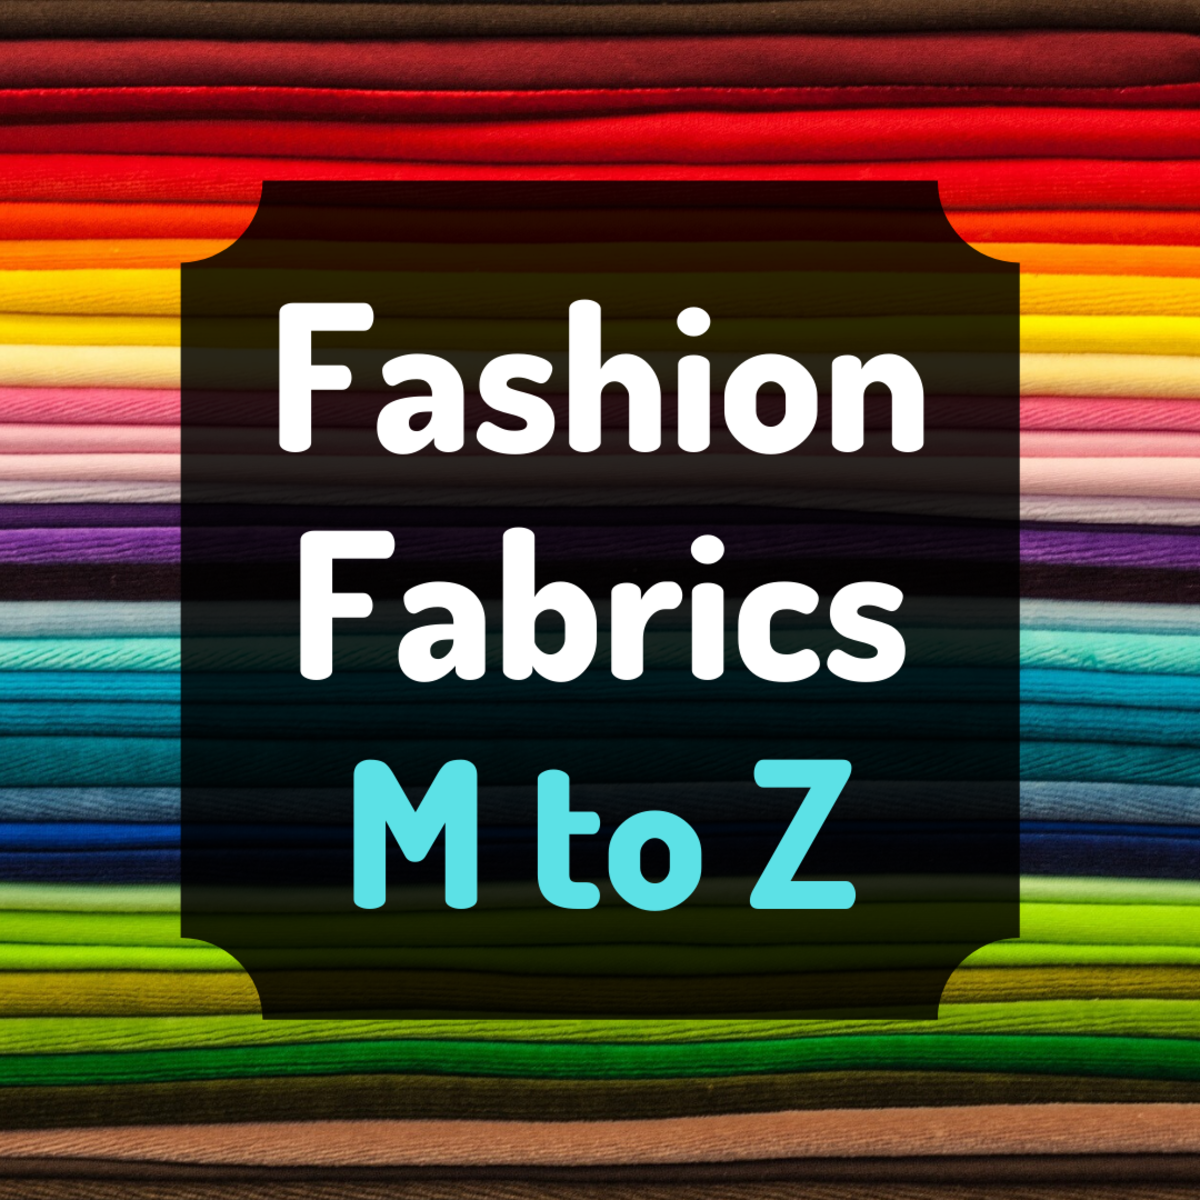 List of the Most Commonly Used Fabrics in Fashion (M to Z)